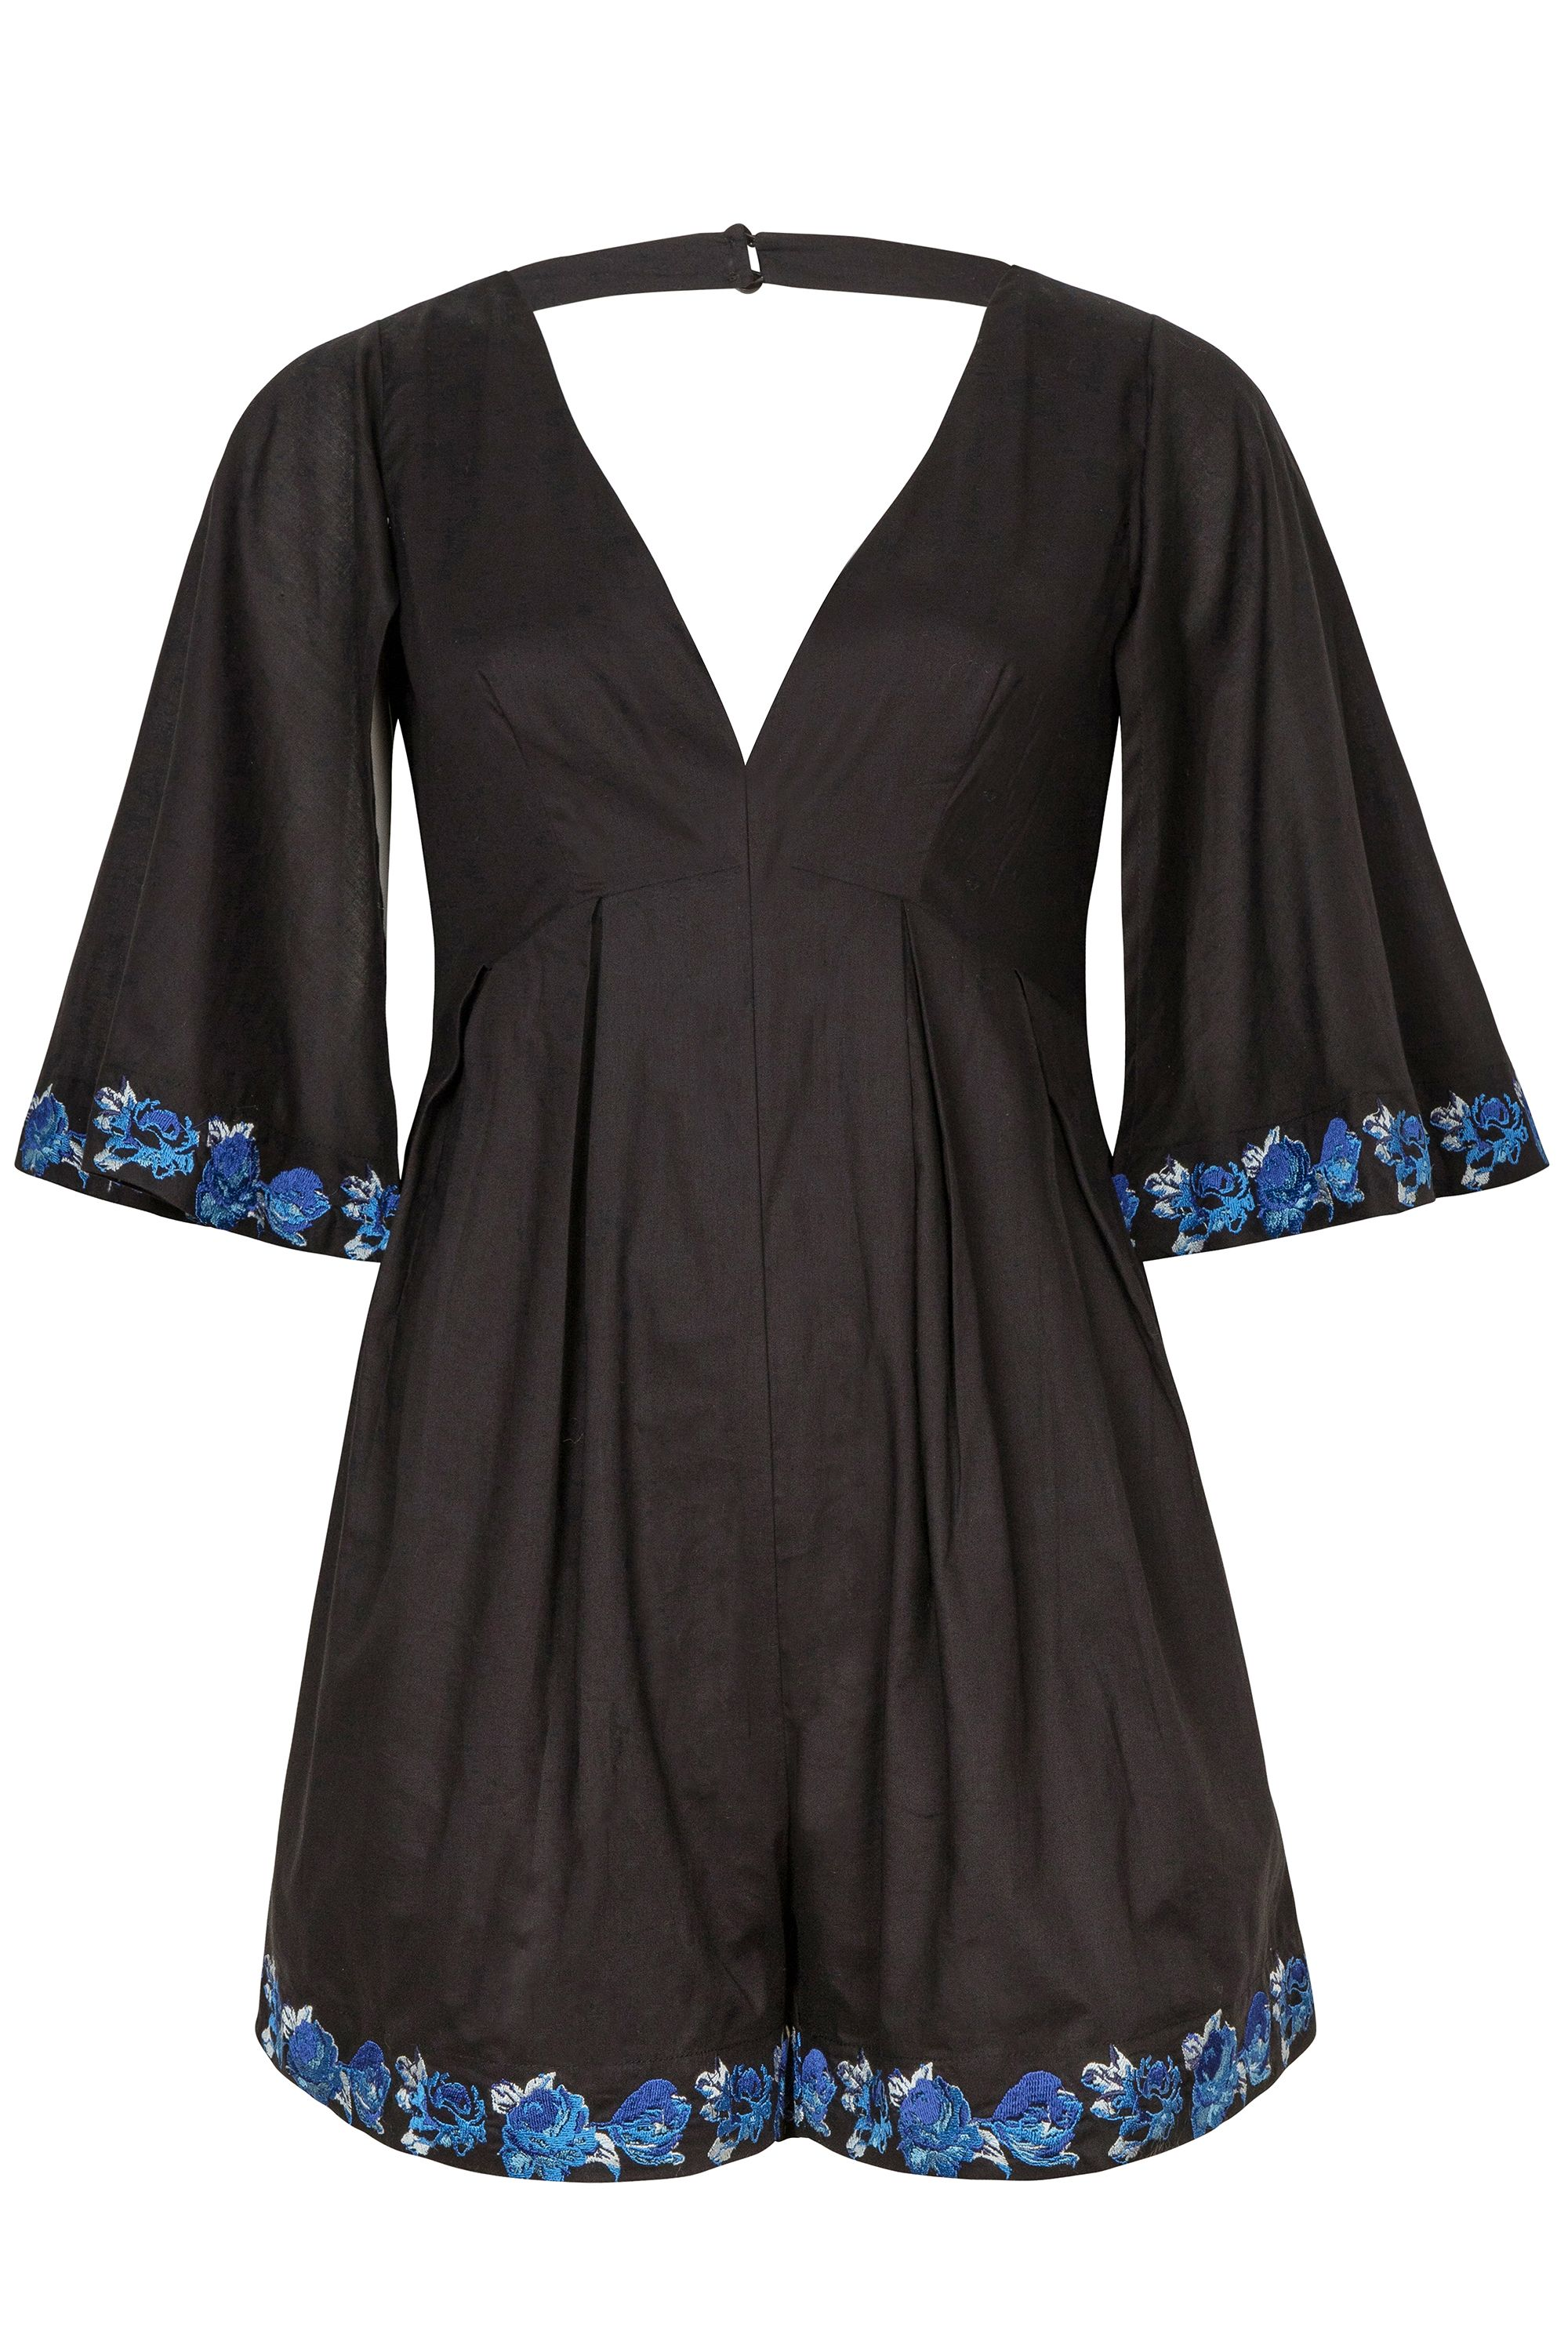 Wolf & Whistle Wolf & Whistle Blue & Black Embroidered Playsuit, Black